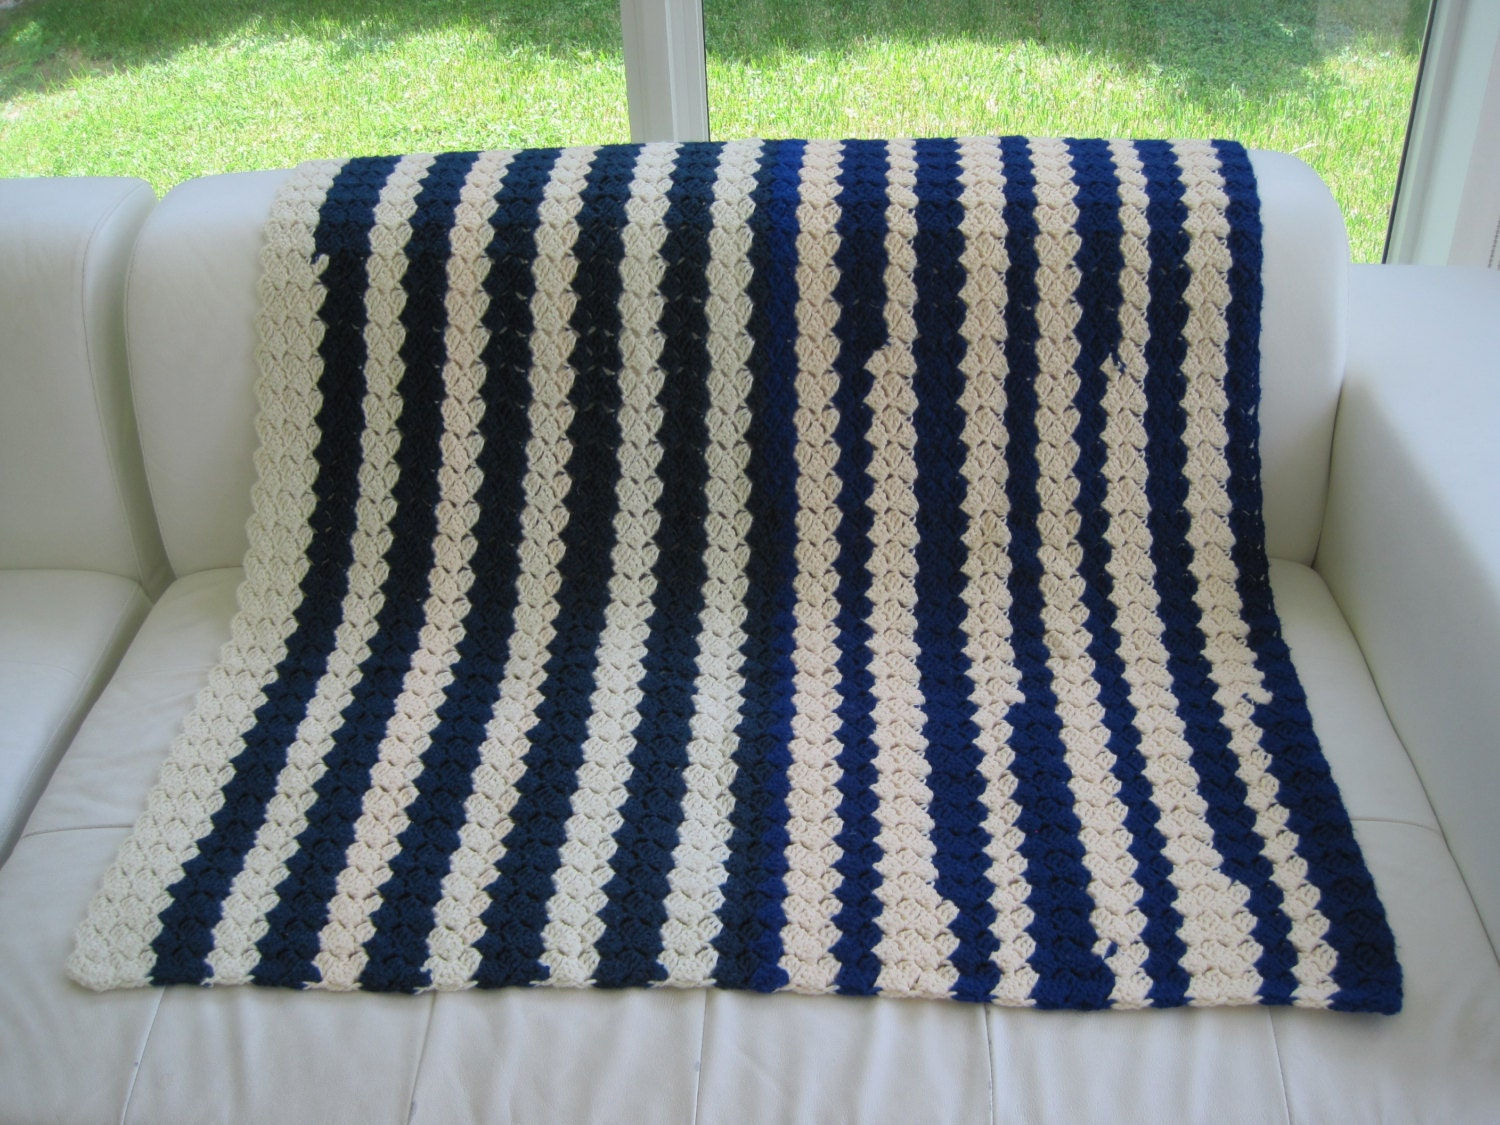 Anchor Knitting Pattern Blanket : Vintage Hand Knit Blanket Nautical Stripes Navy Blue and